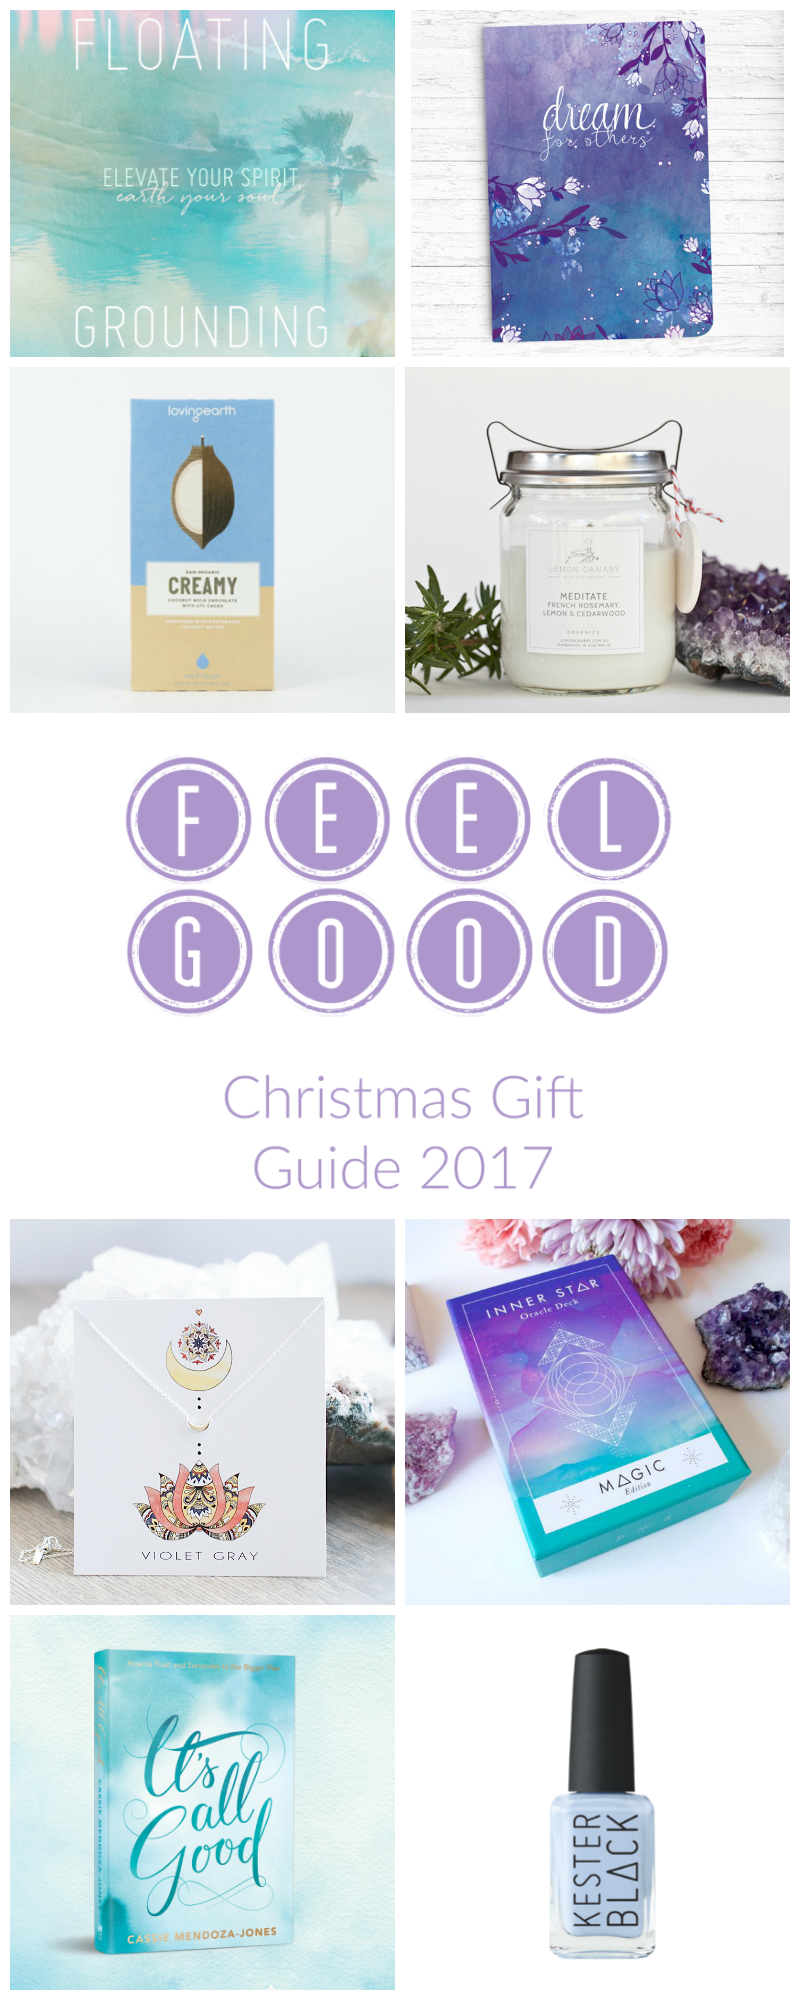 FEEL GOOD CHRISTMAS GIFT GUIDE FOR 2017. With 23+ ideas for feel-good, empowering and unique gifts for the awesome humans in your life! https://oneinfinitelife.com/christmas-gift-guide-2017/